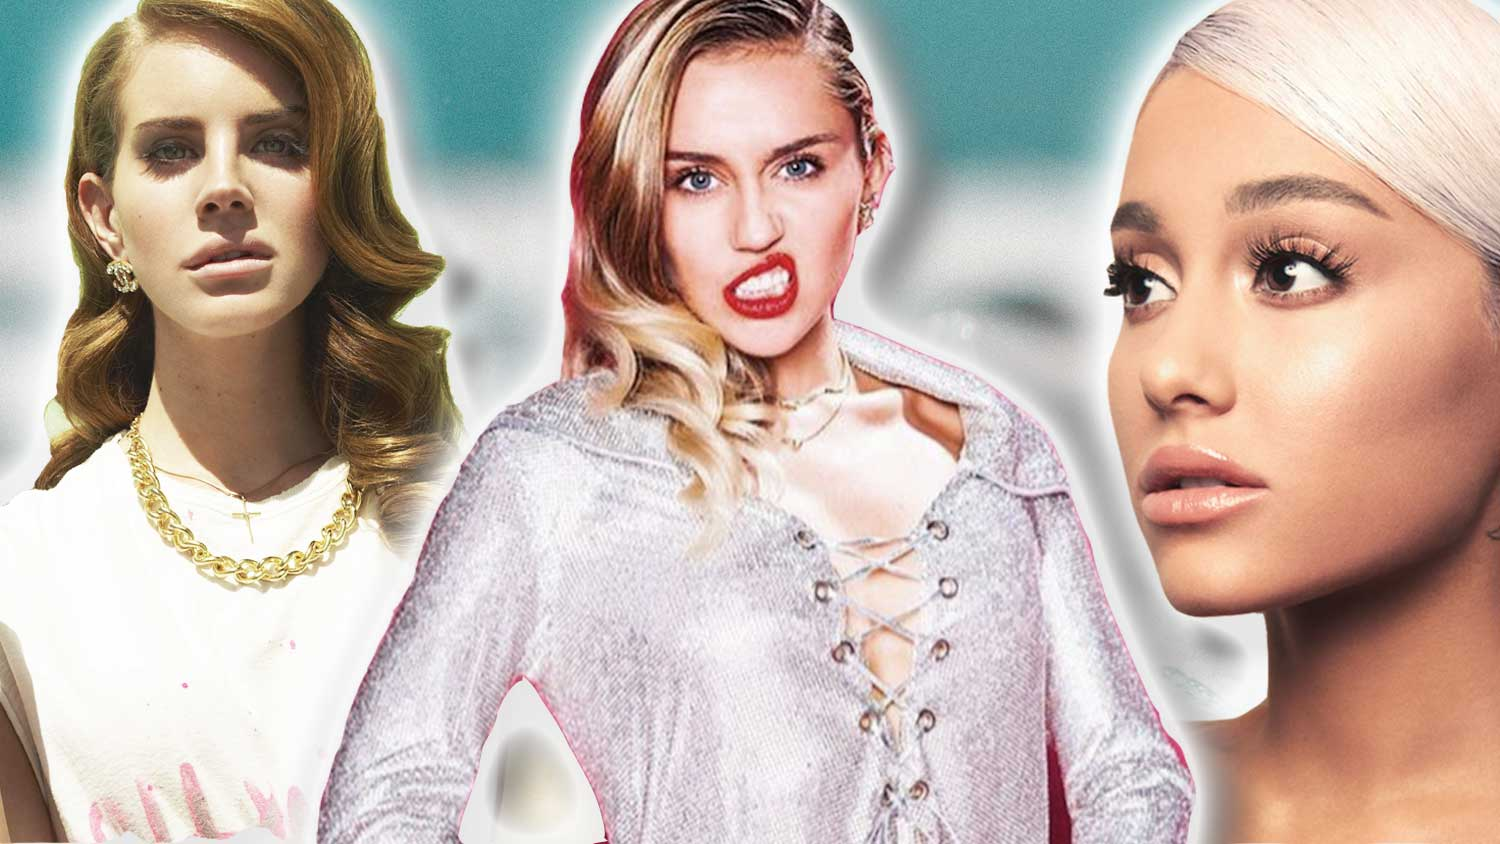 Miley, Ariana, and Lana Just Formed a Vegan Girl Band